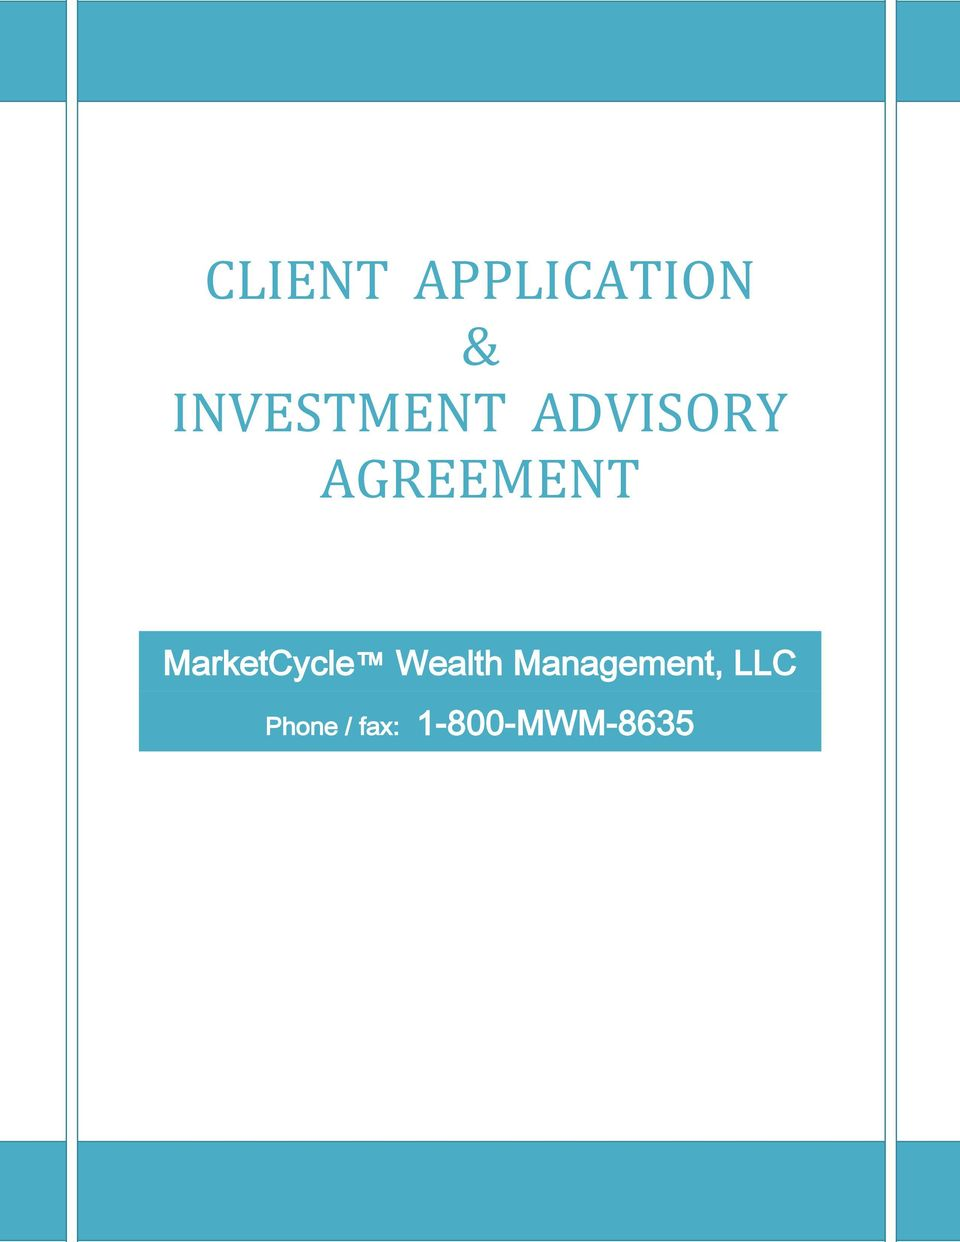 AGREEMENT MarketCycle Wealth